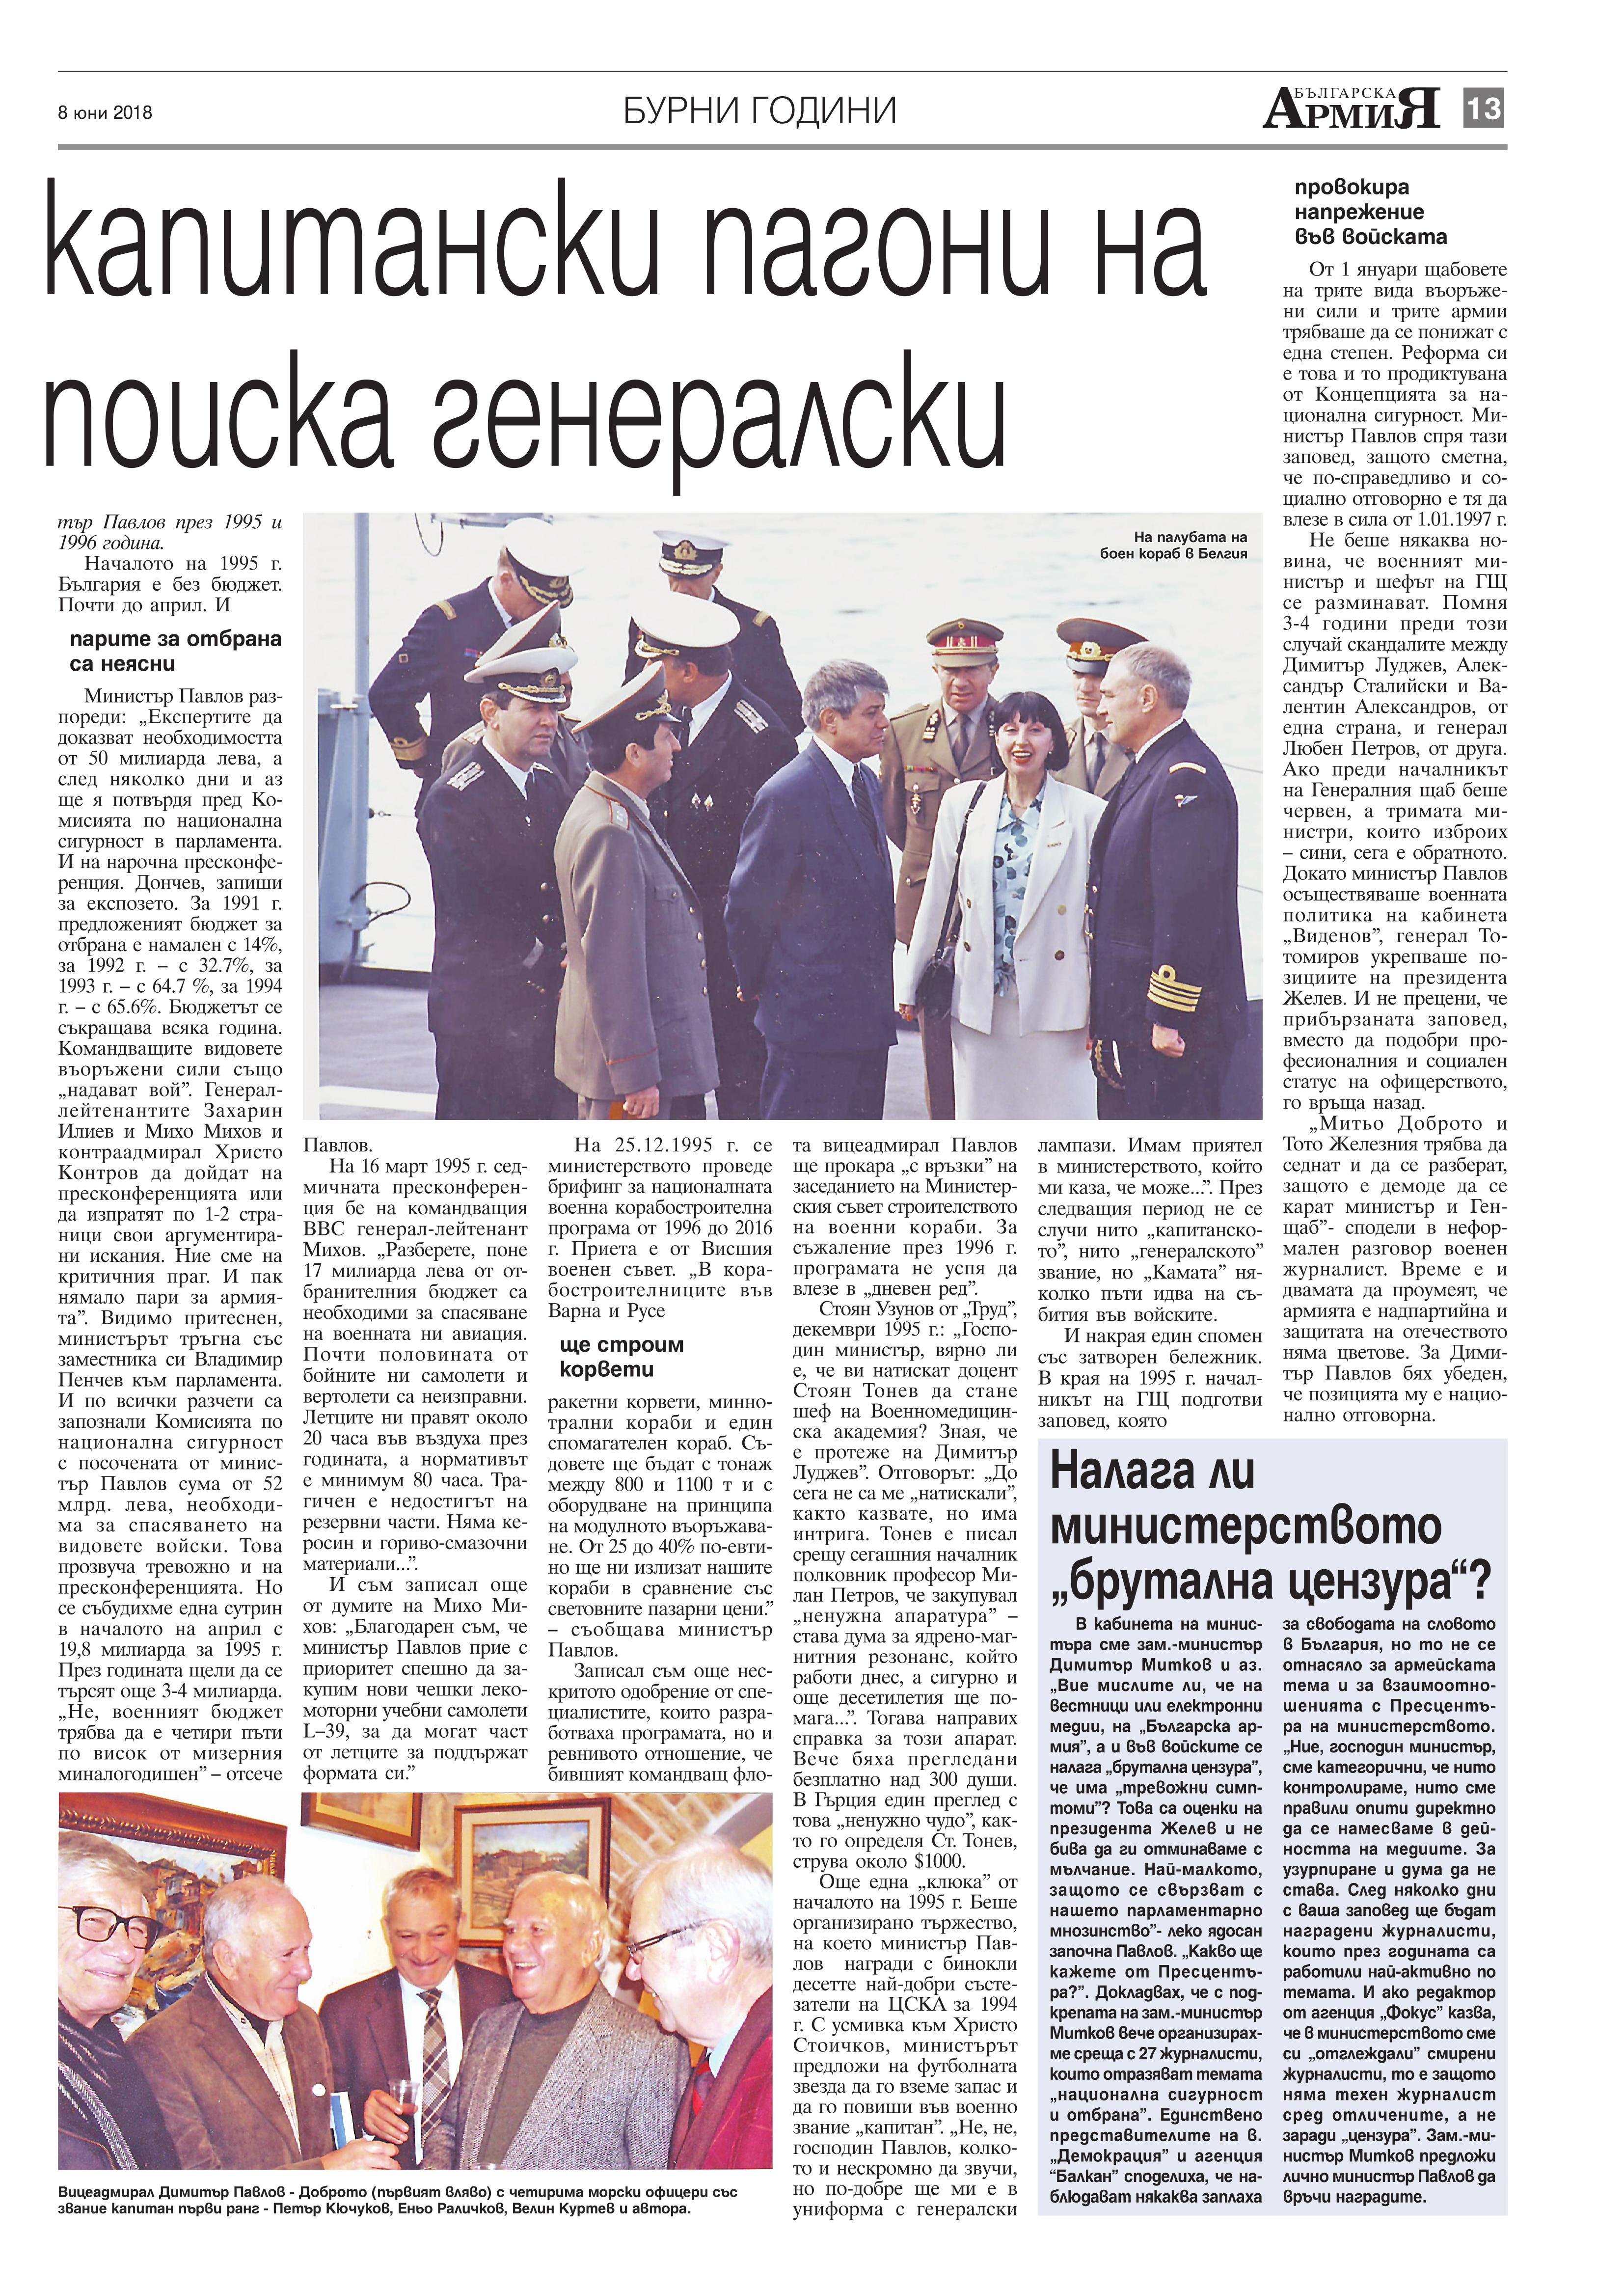 http://armymedia.bg/wp-content/uploads/2015/06/13.page1_-54.jpg